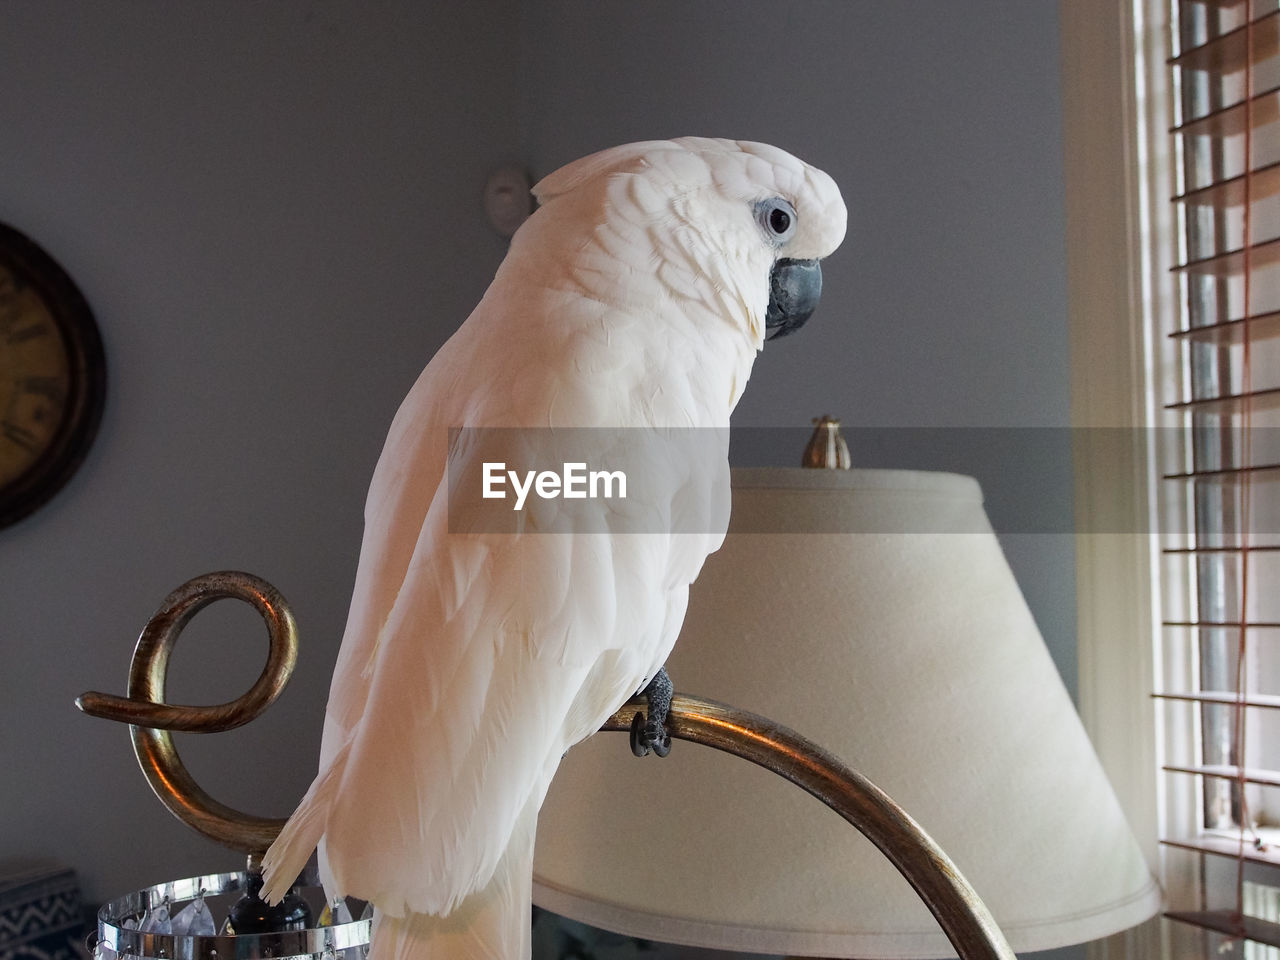 animal, bird, vertebrate, animal themes, one animal, animal wildlife, white color, parrot, perching, no people, indoors, pets, domestic, animals in the wild, close-up, focus on foreground, home interior, domestic animals, day, beak, electric lamp